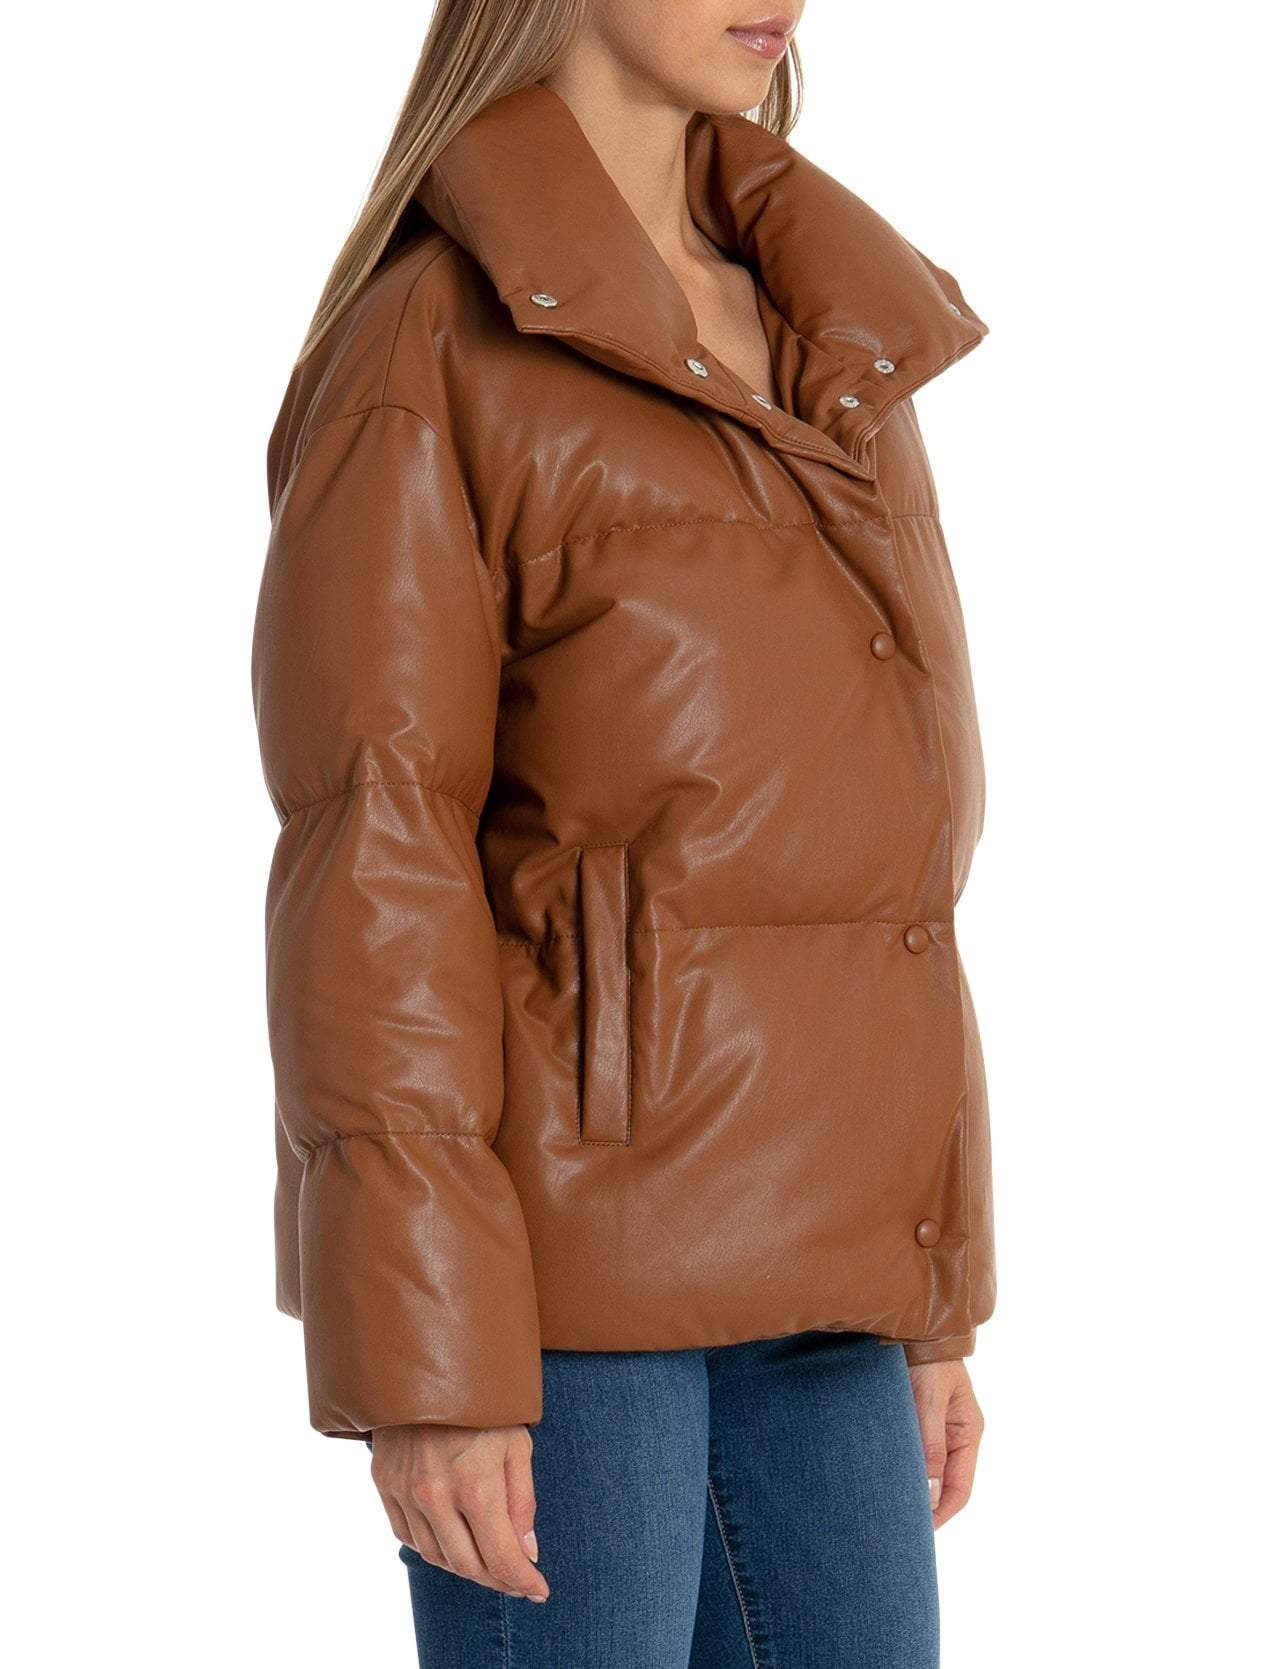 Quilted Faux Leather Puffer Jacket - BAGATELLE.CITY Shop Leather | Suede | Jackets